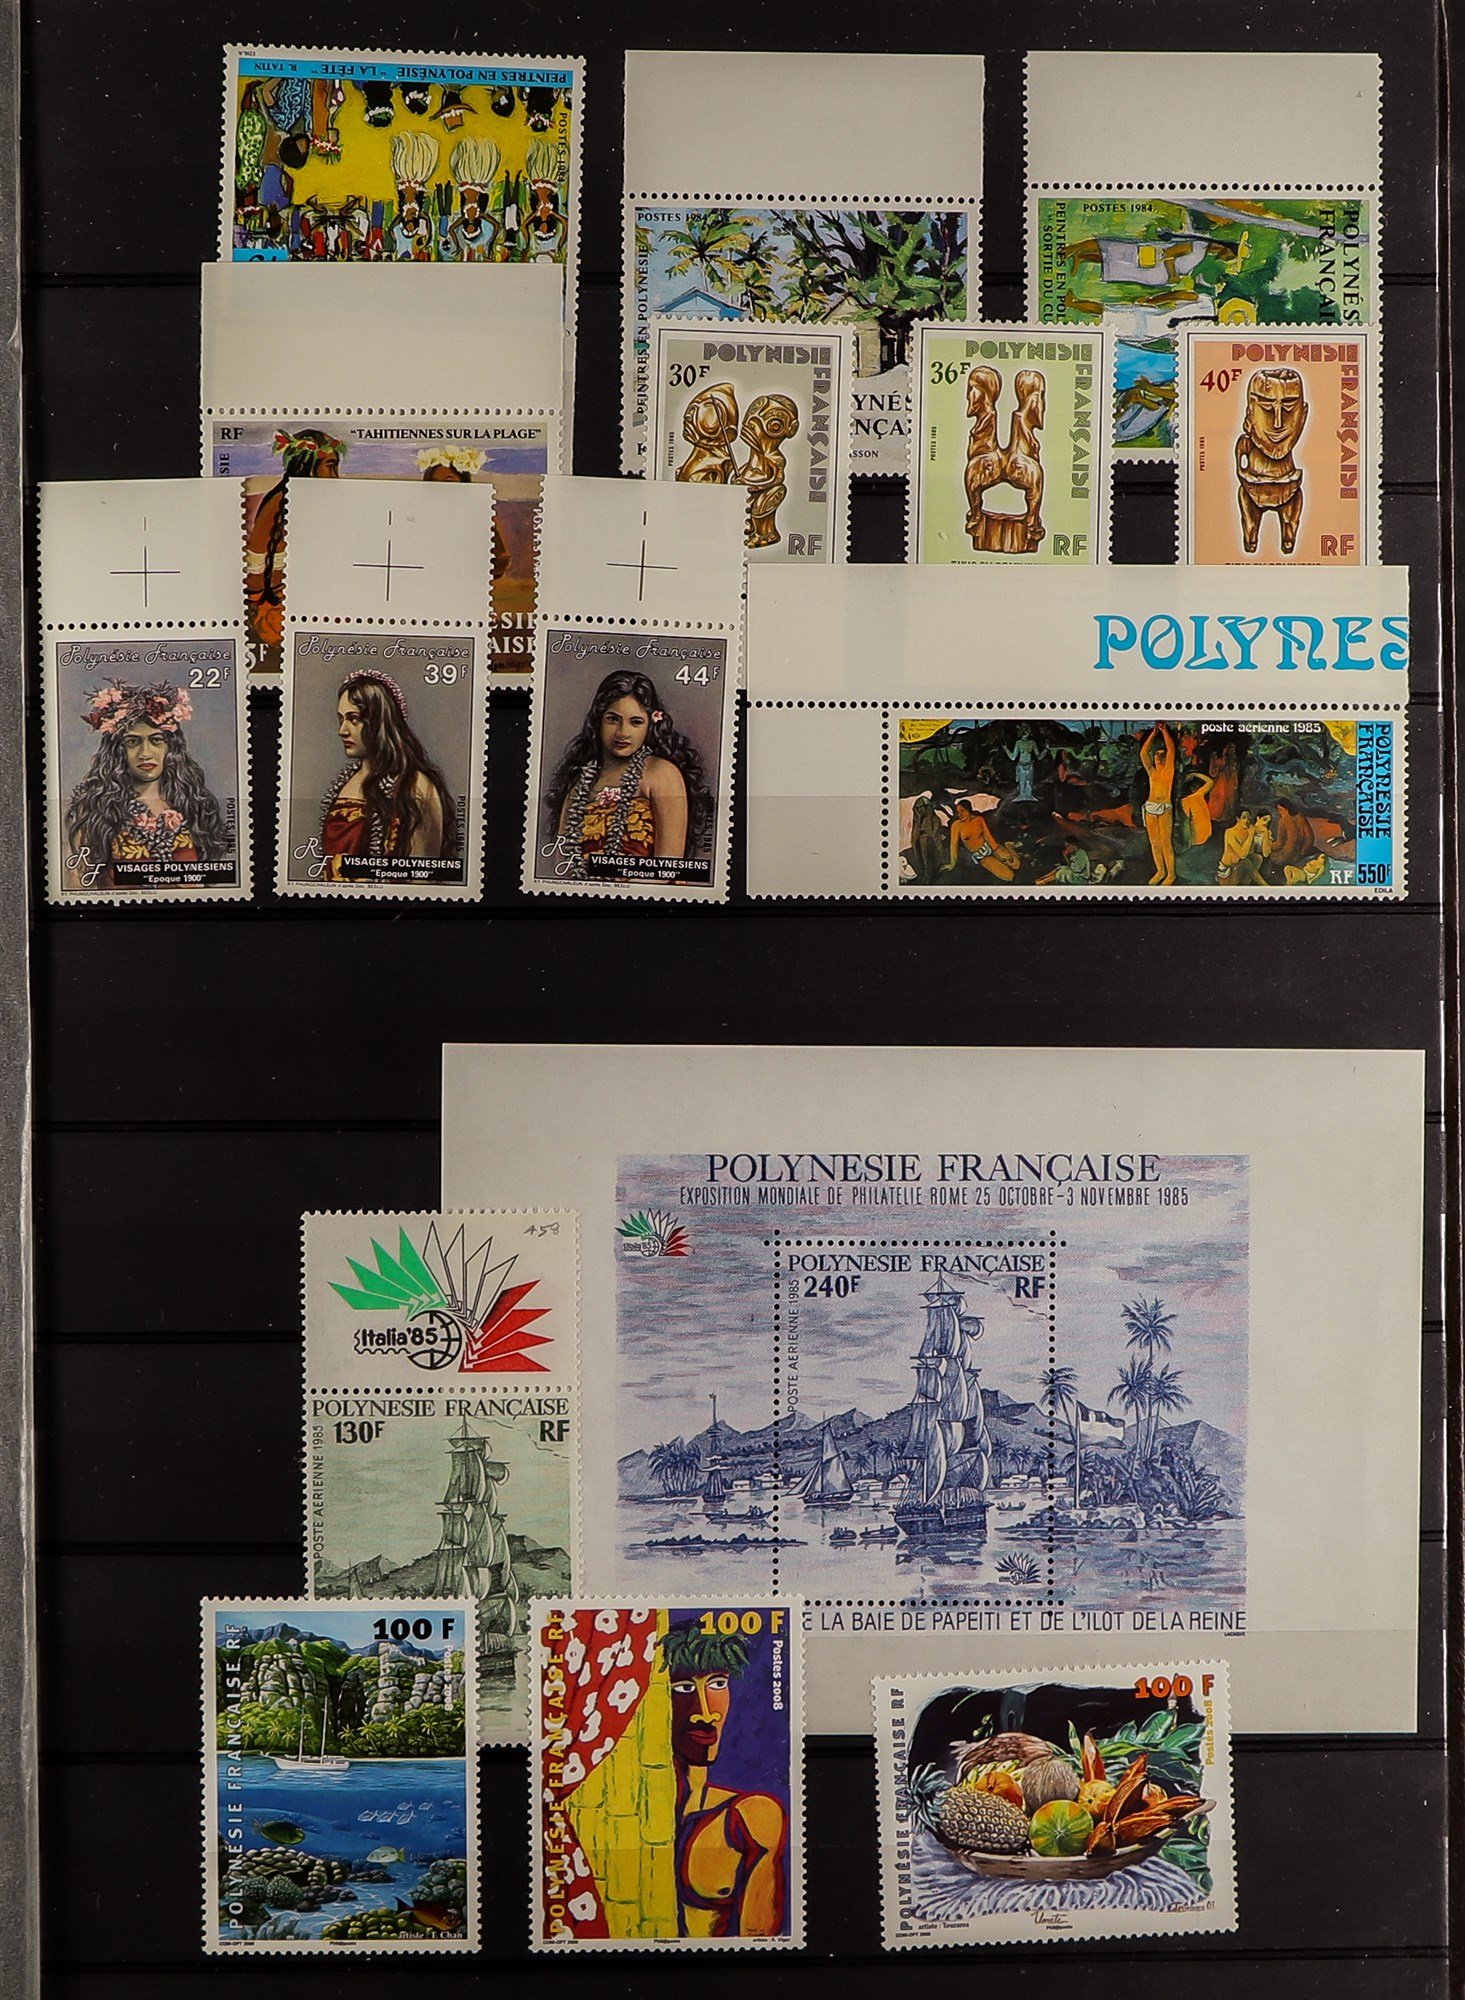 FRENCH COLONIES POLYNESIA 1948-2009 mint, largely never hinged collection, incl. few imperfs, - Image 2 of 9